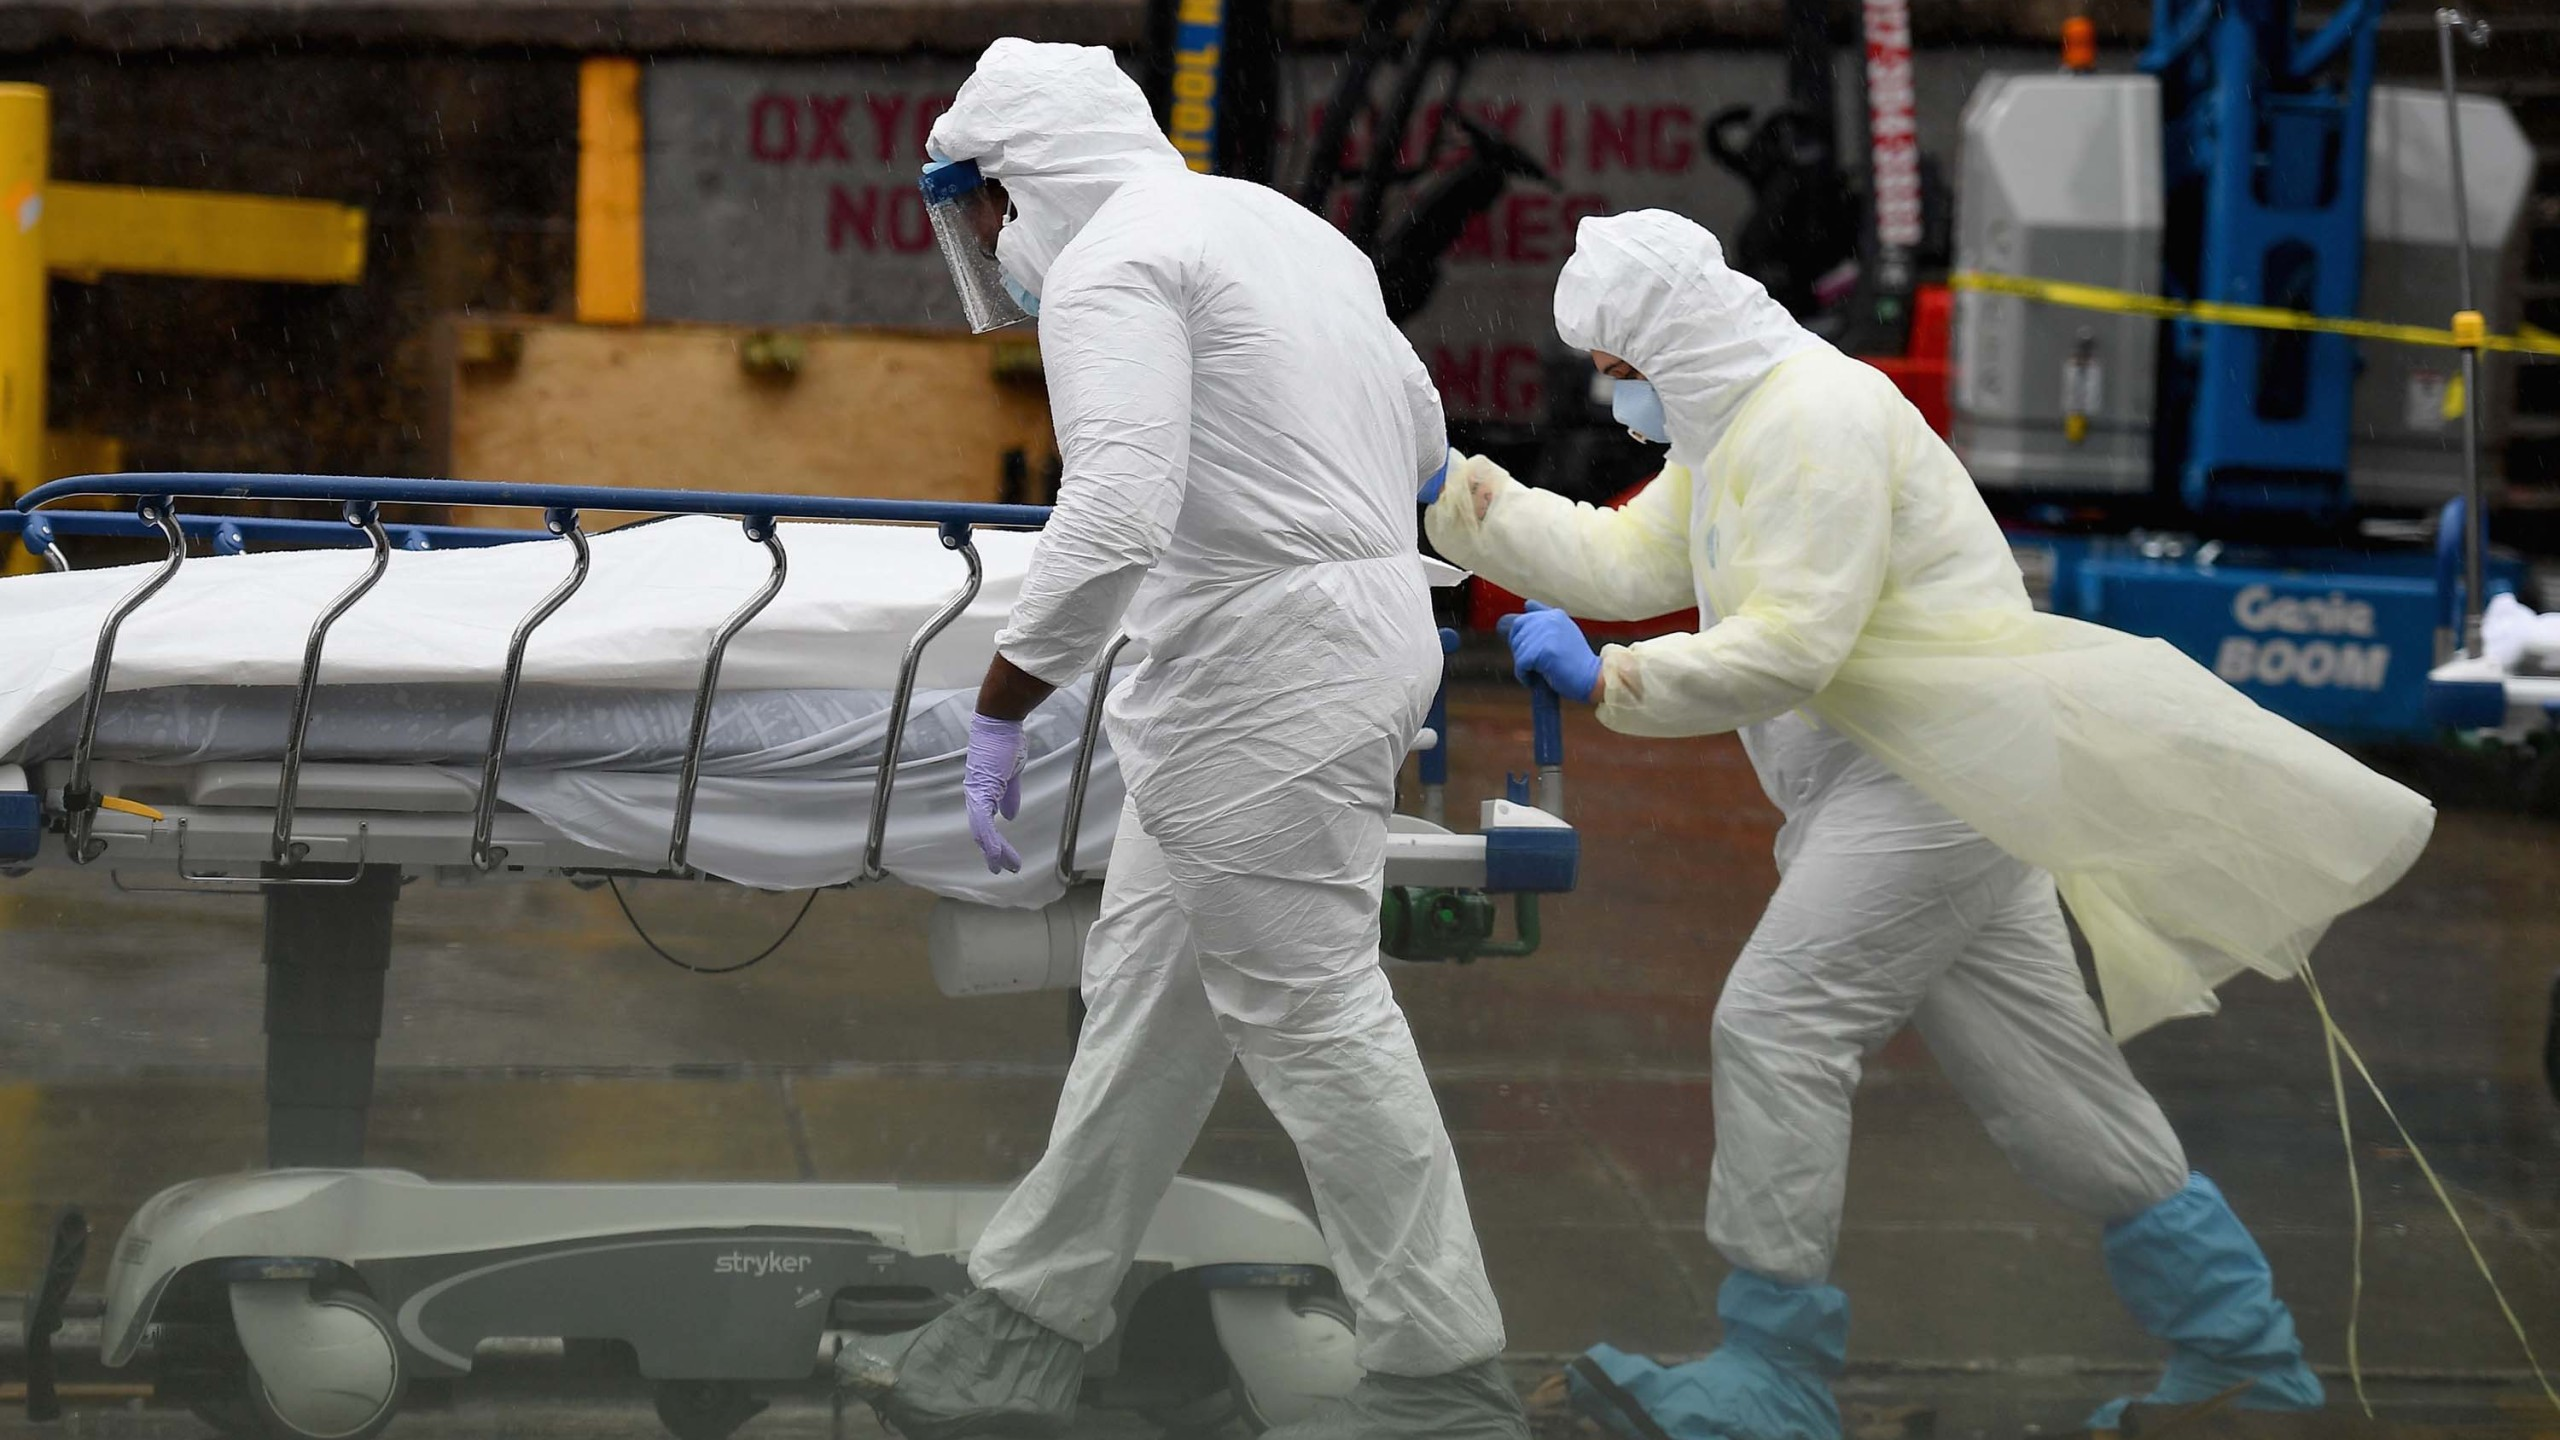 Medical personnel move a deceased patient to a refrigerated truck serving as make shift morgues at Brooklyn Hospital Center on April 09, 2020 in New York City. (ANGELA WEISS/AFP via Getty Images)